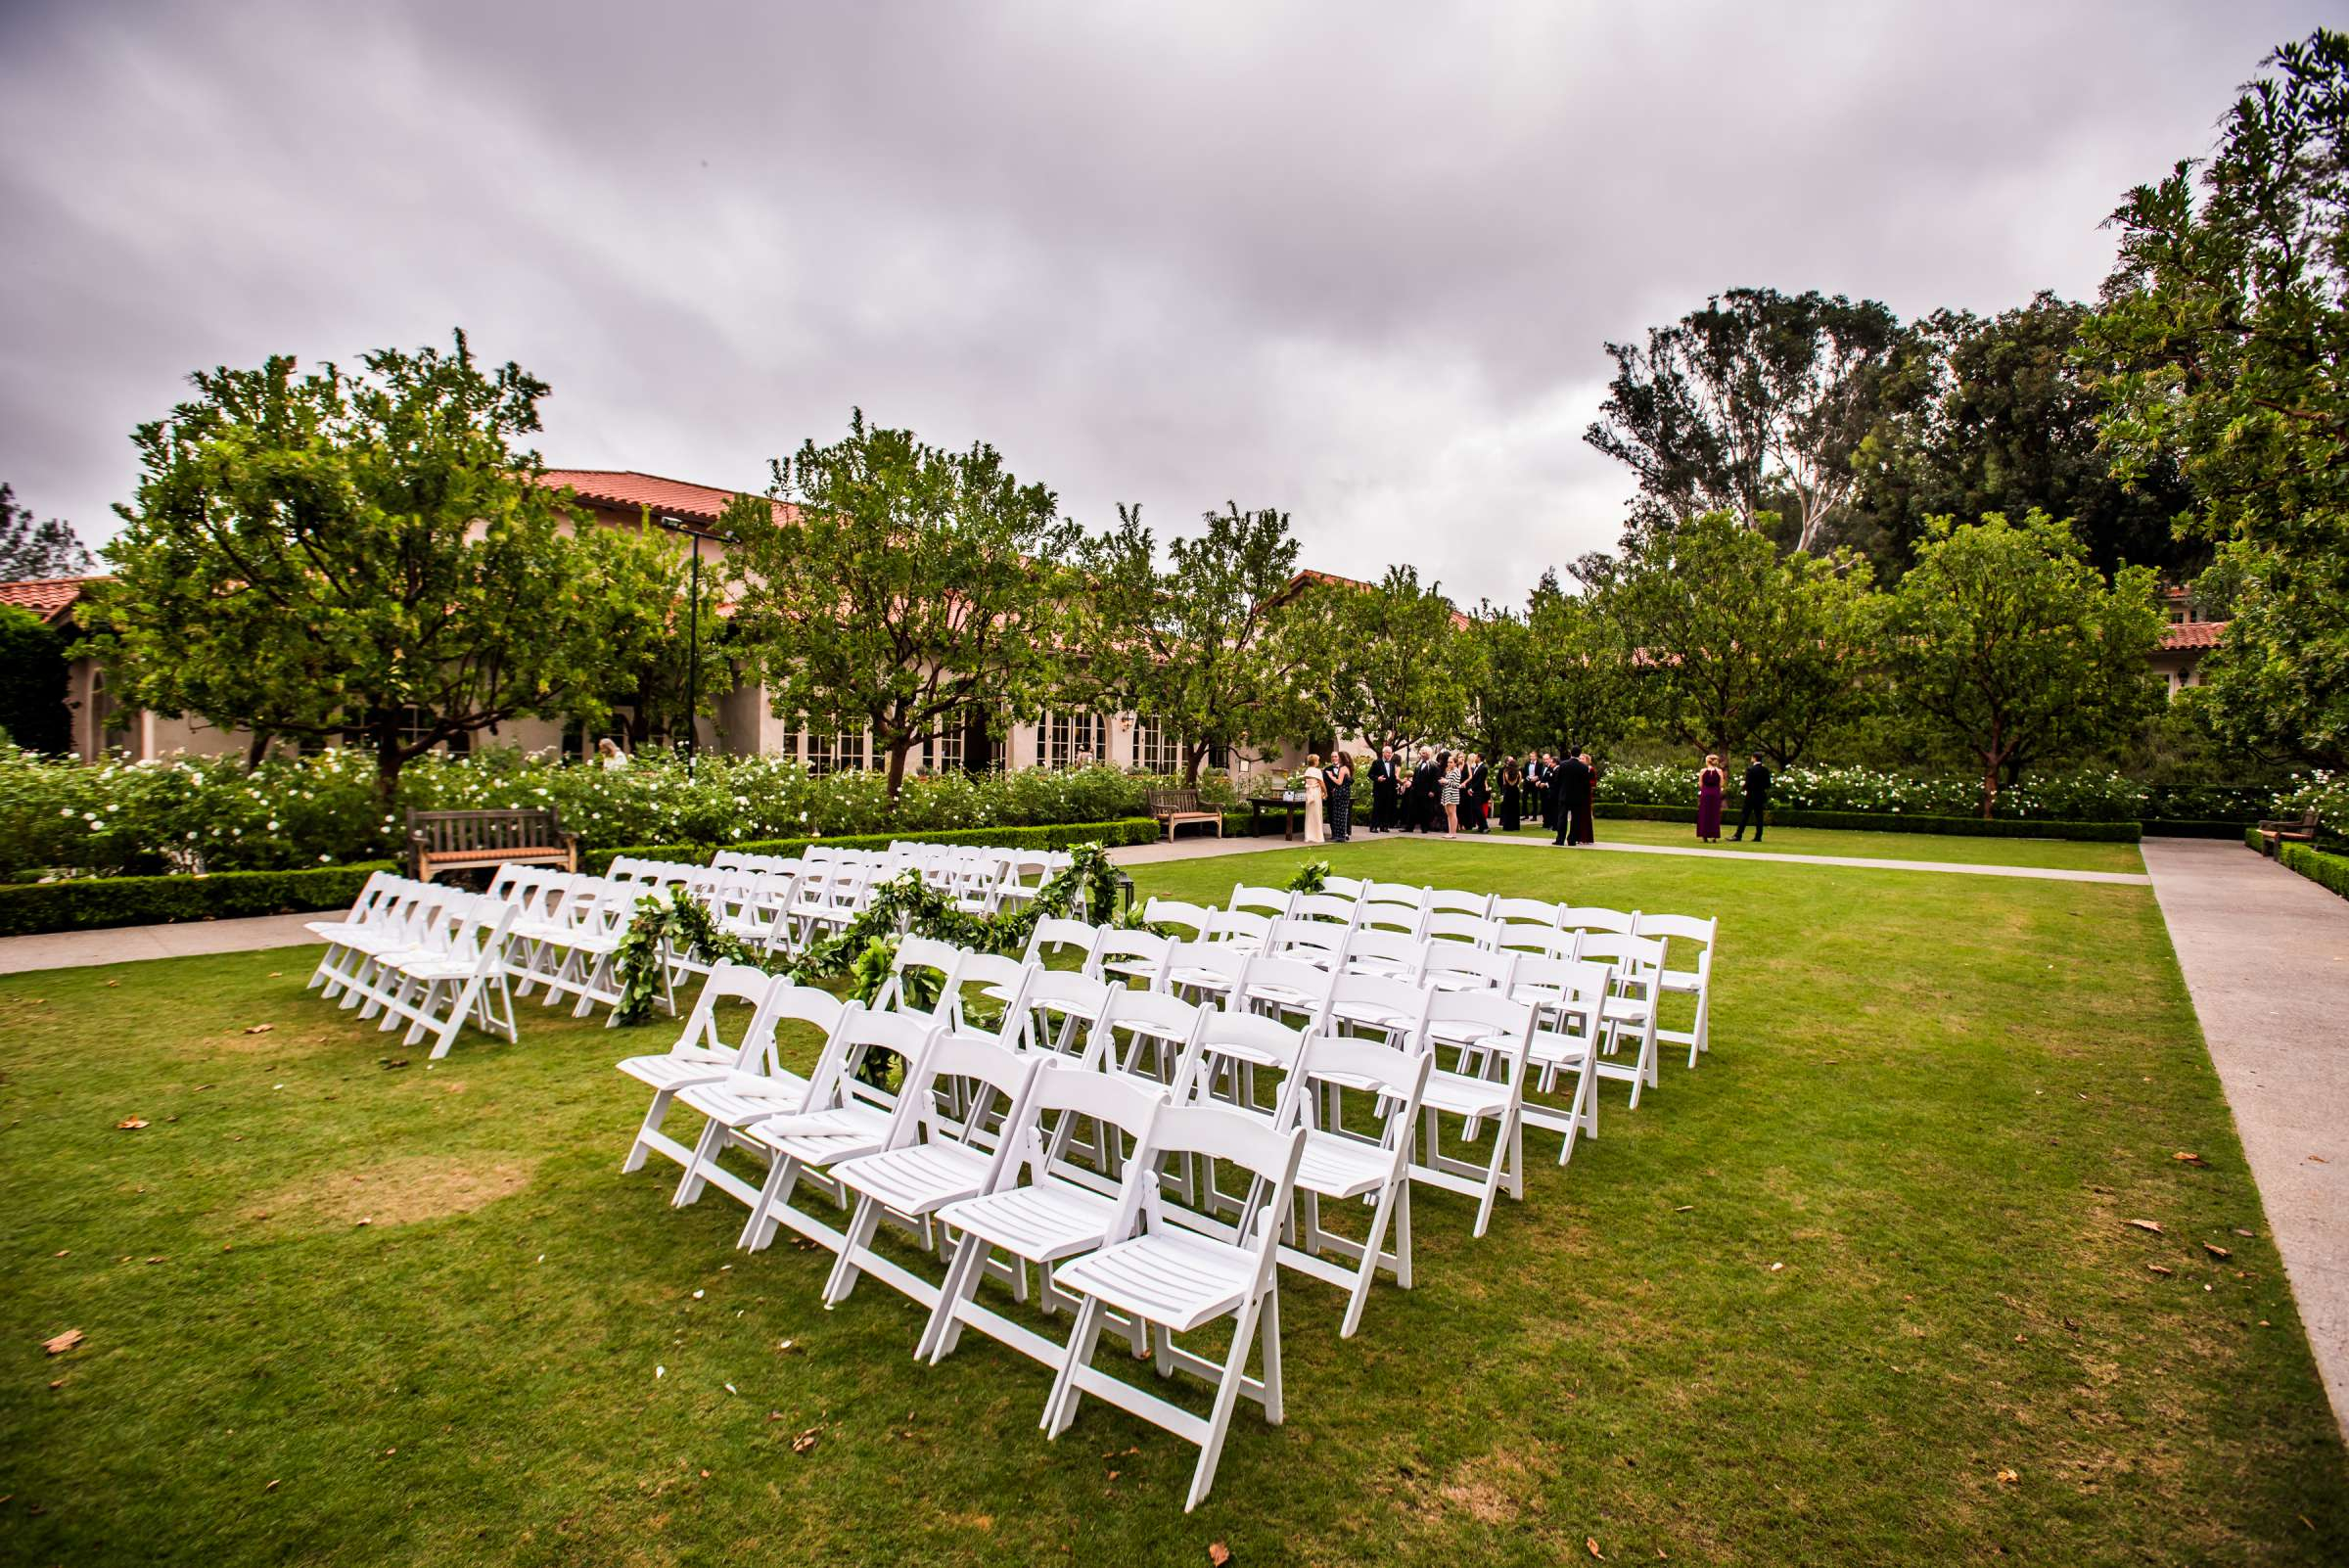 Rancho Bernardo Inn Wedding coordinated by Très Chic Events, Stefania and Nicholas Wedding Photo #96 by True Photography